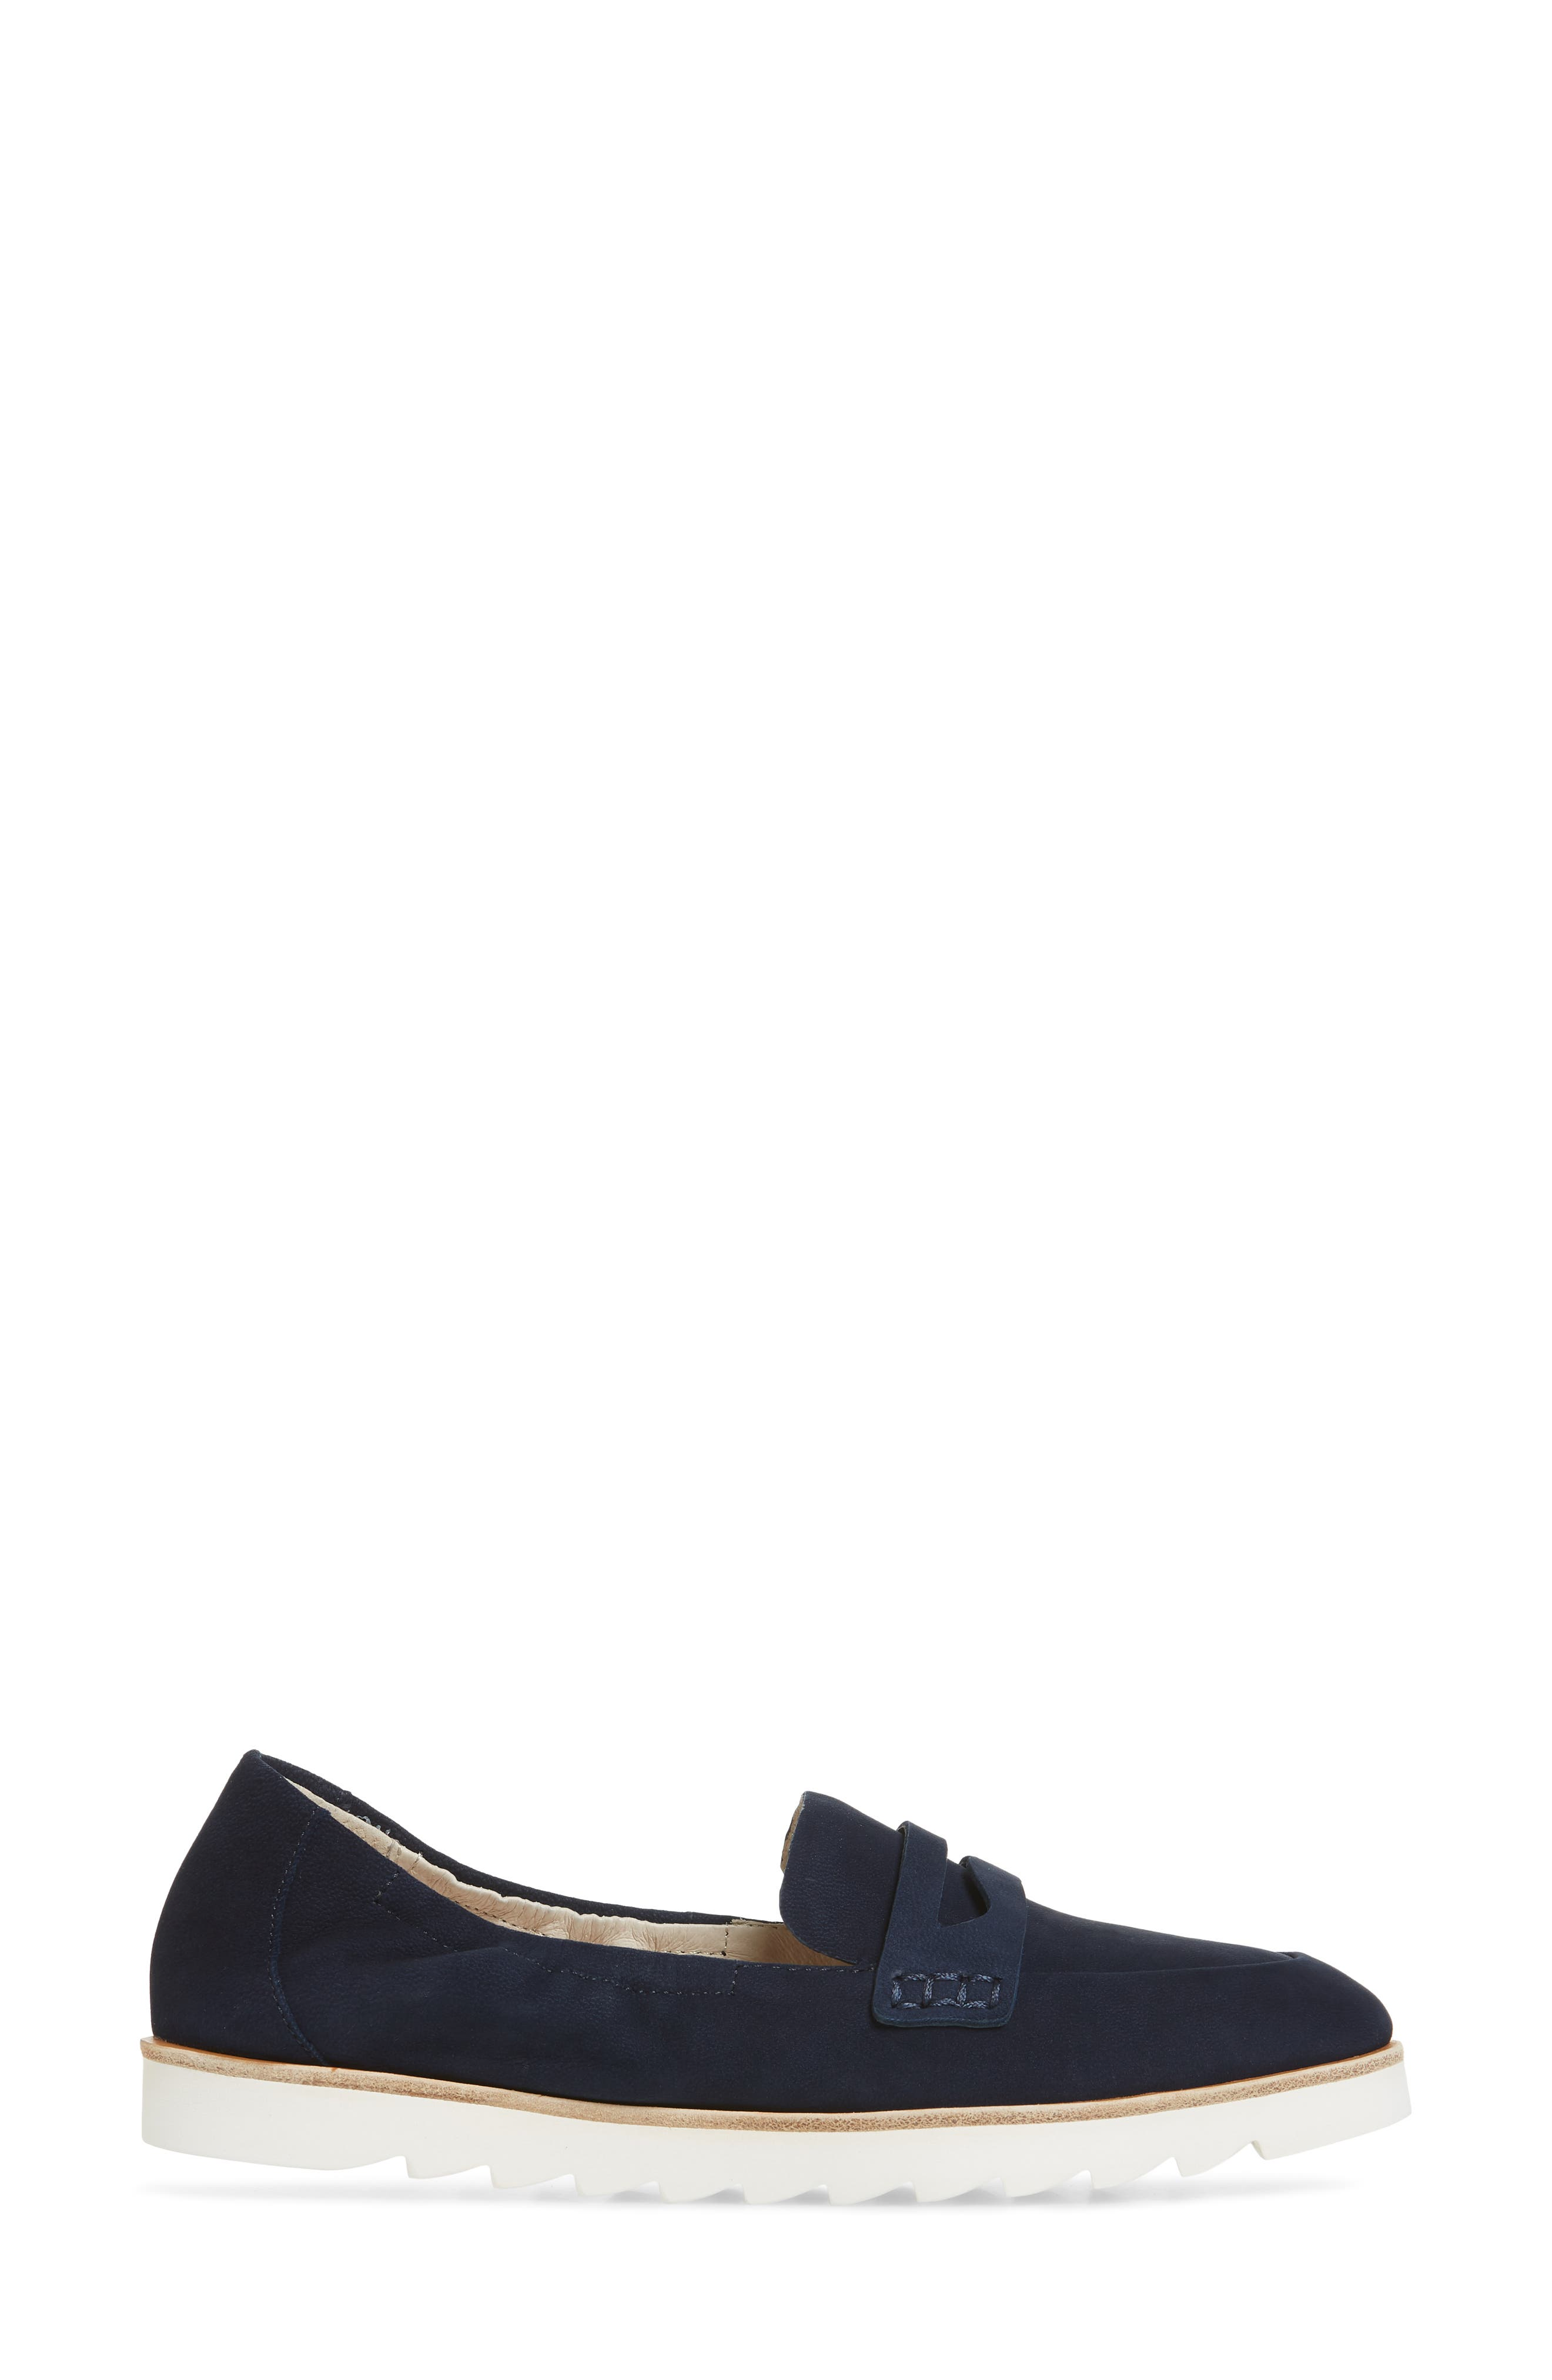 Rylee Penny Loafer,                             Alternate thumbnail 3, color,                             Navy Nubuck